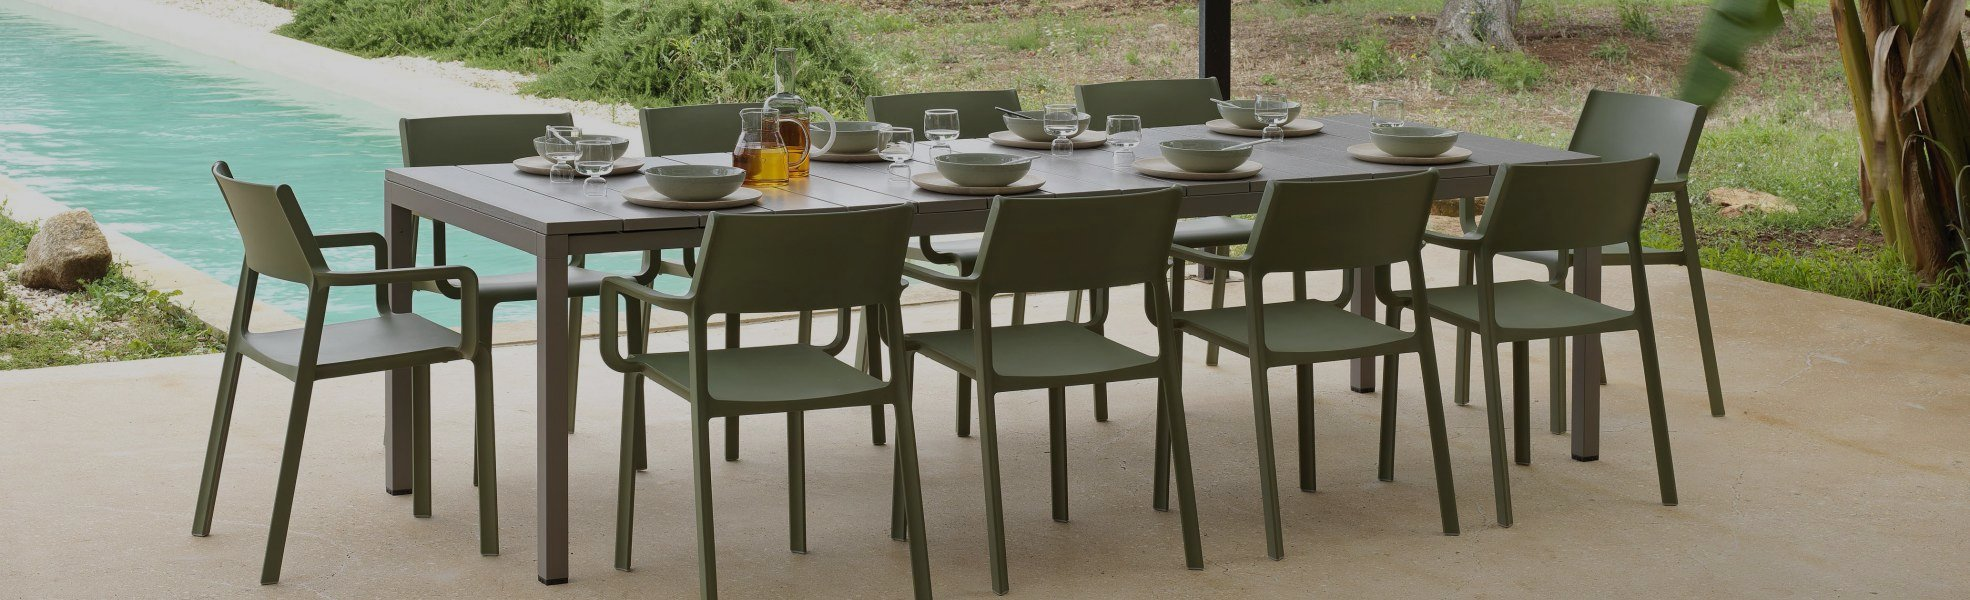 Nardi Patio Furniture.Nz S Best Outdoor Furniture By Nardi Bydezign Furniture